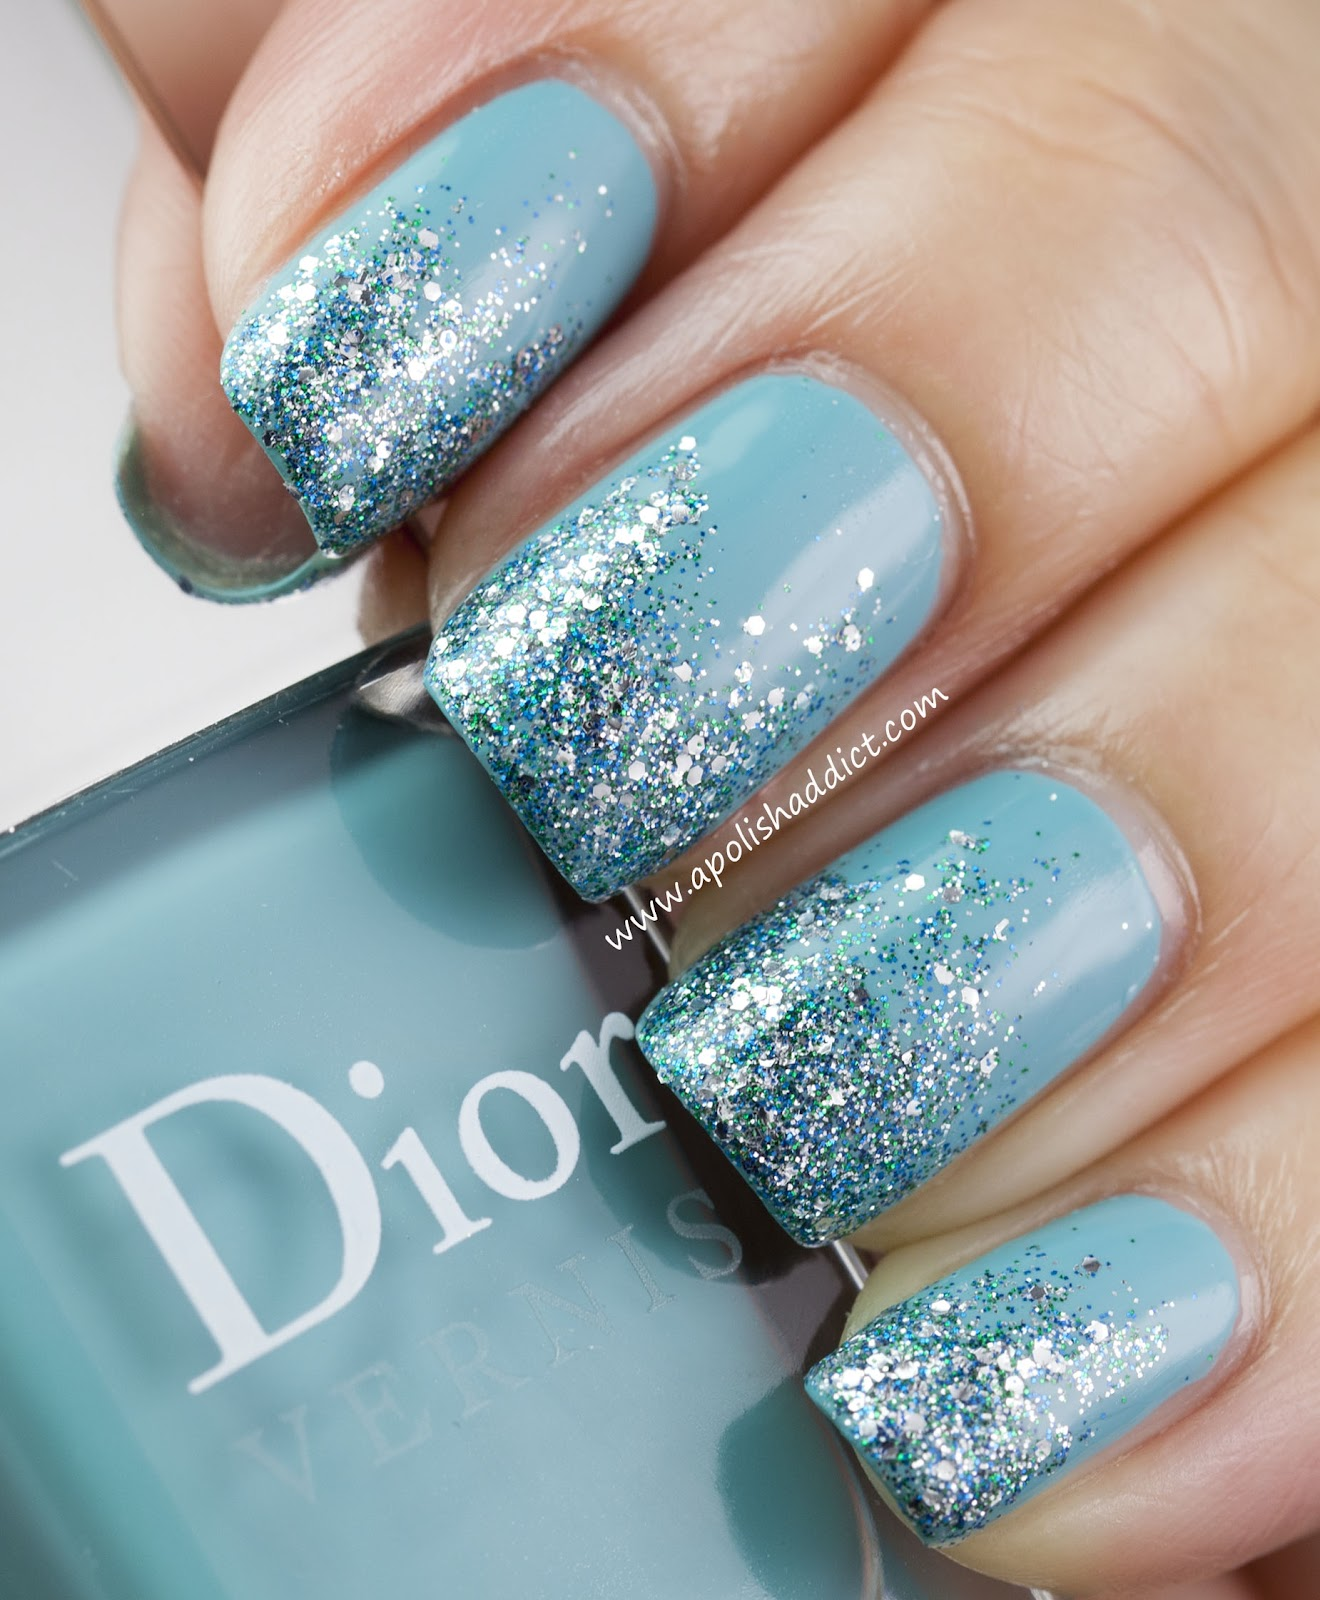 Glitter Tips with Dior Saint Tropez & Nails Inc Hammersmith | A Polish